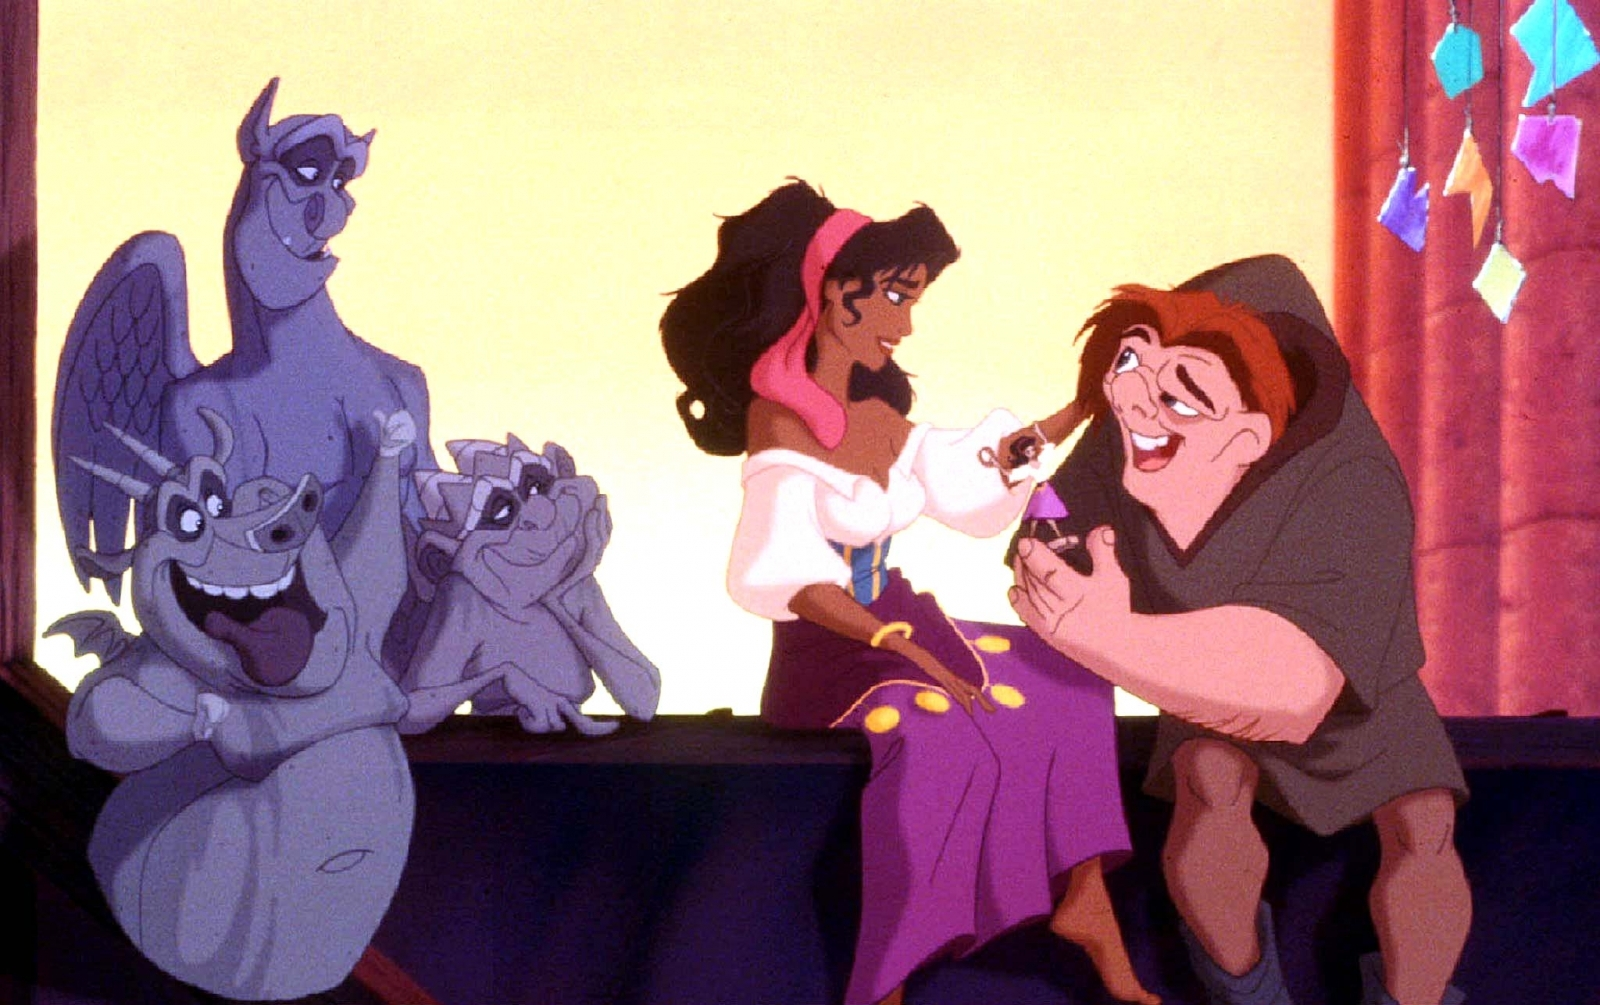 Esmeralda the Hunchback of Notre Dame